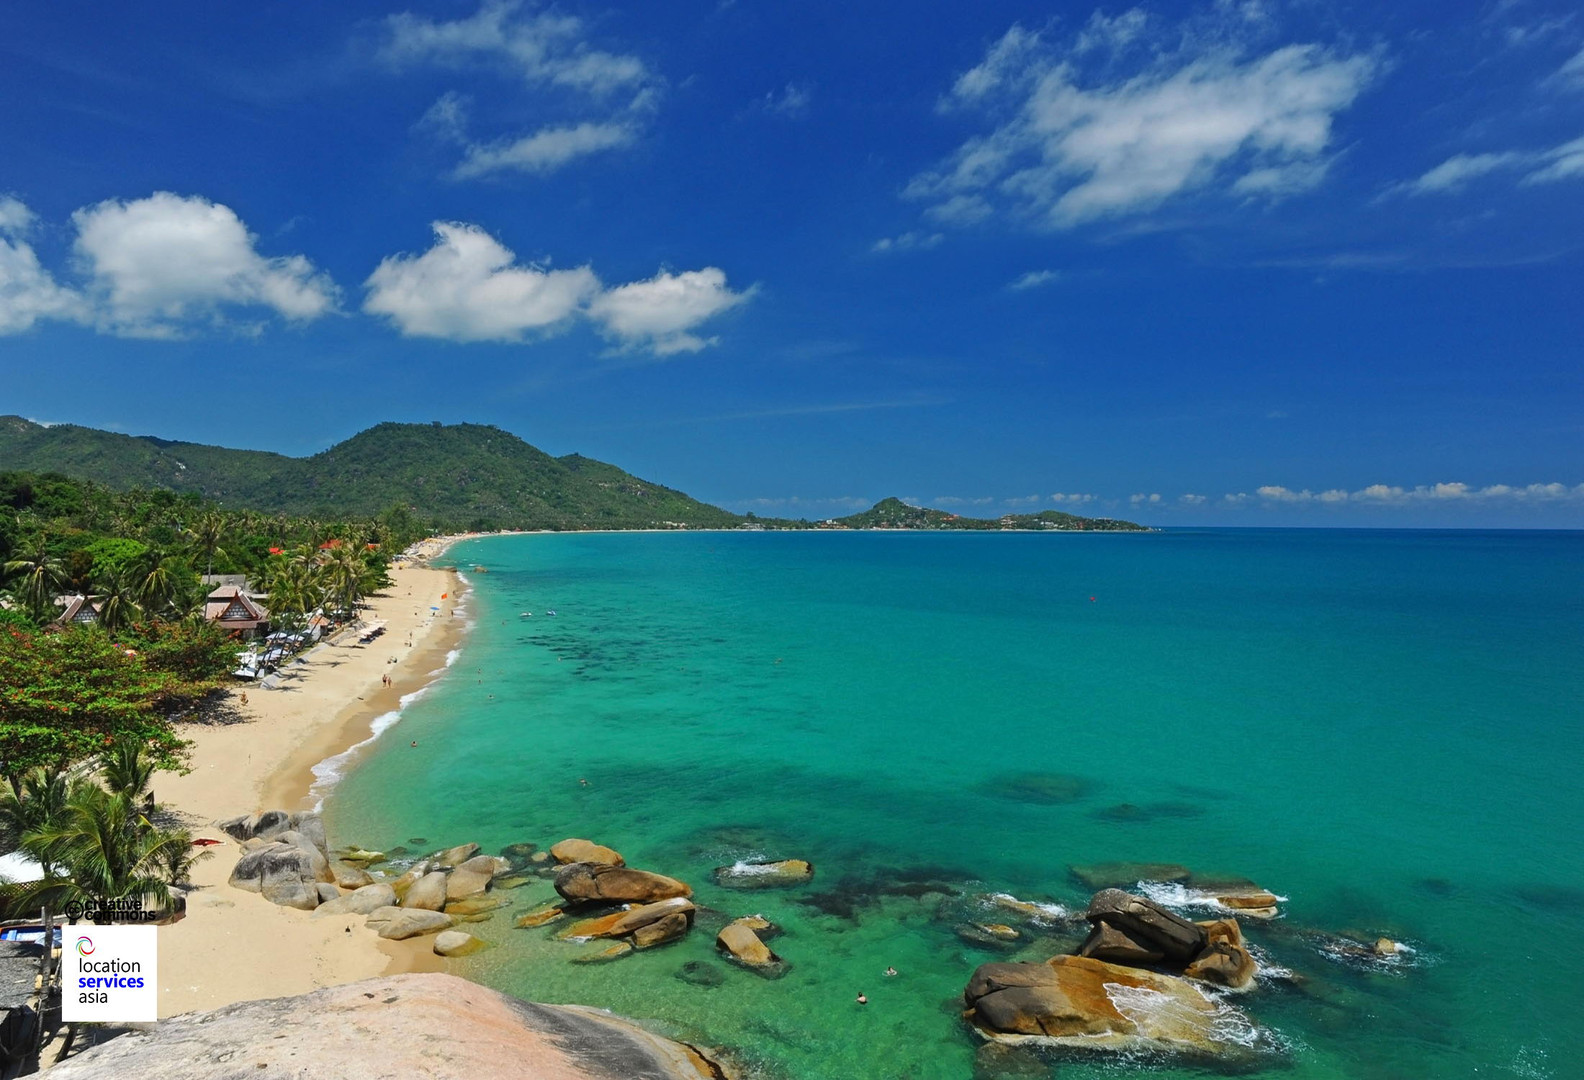 film locations beaches thai e.jpg